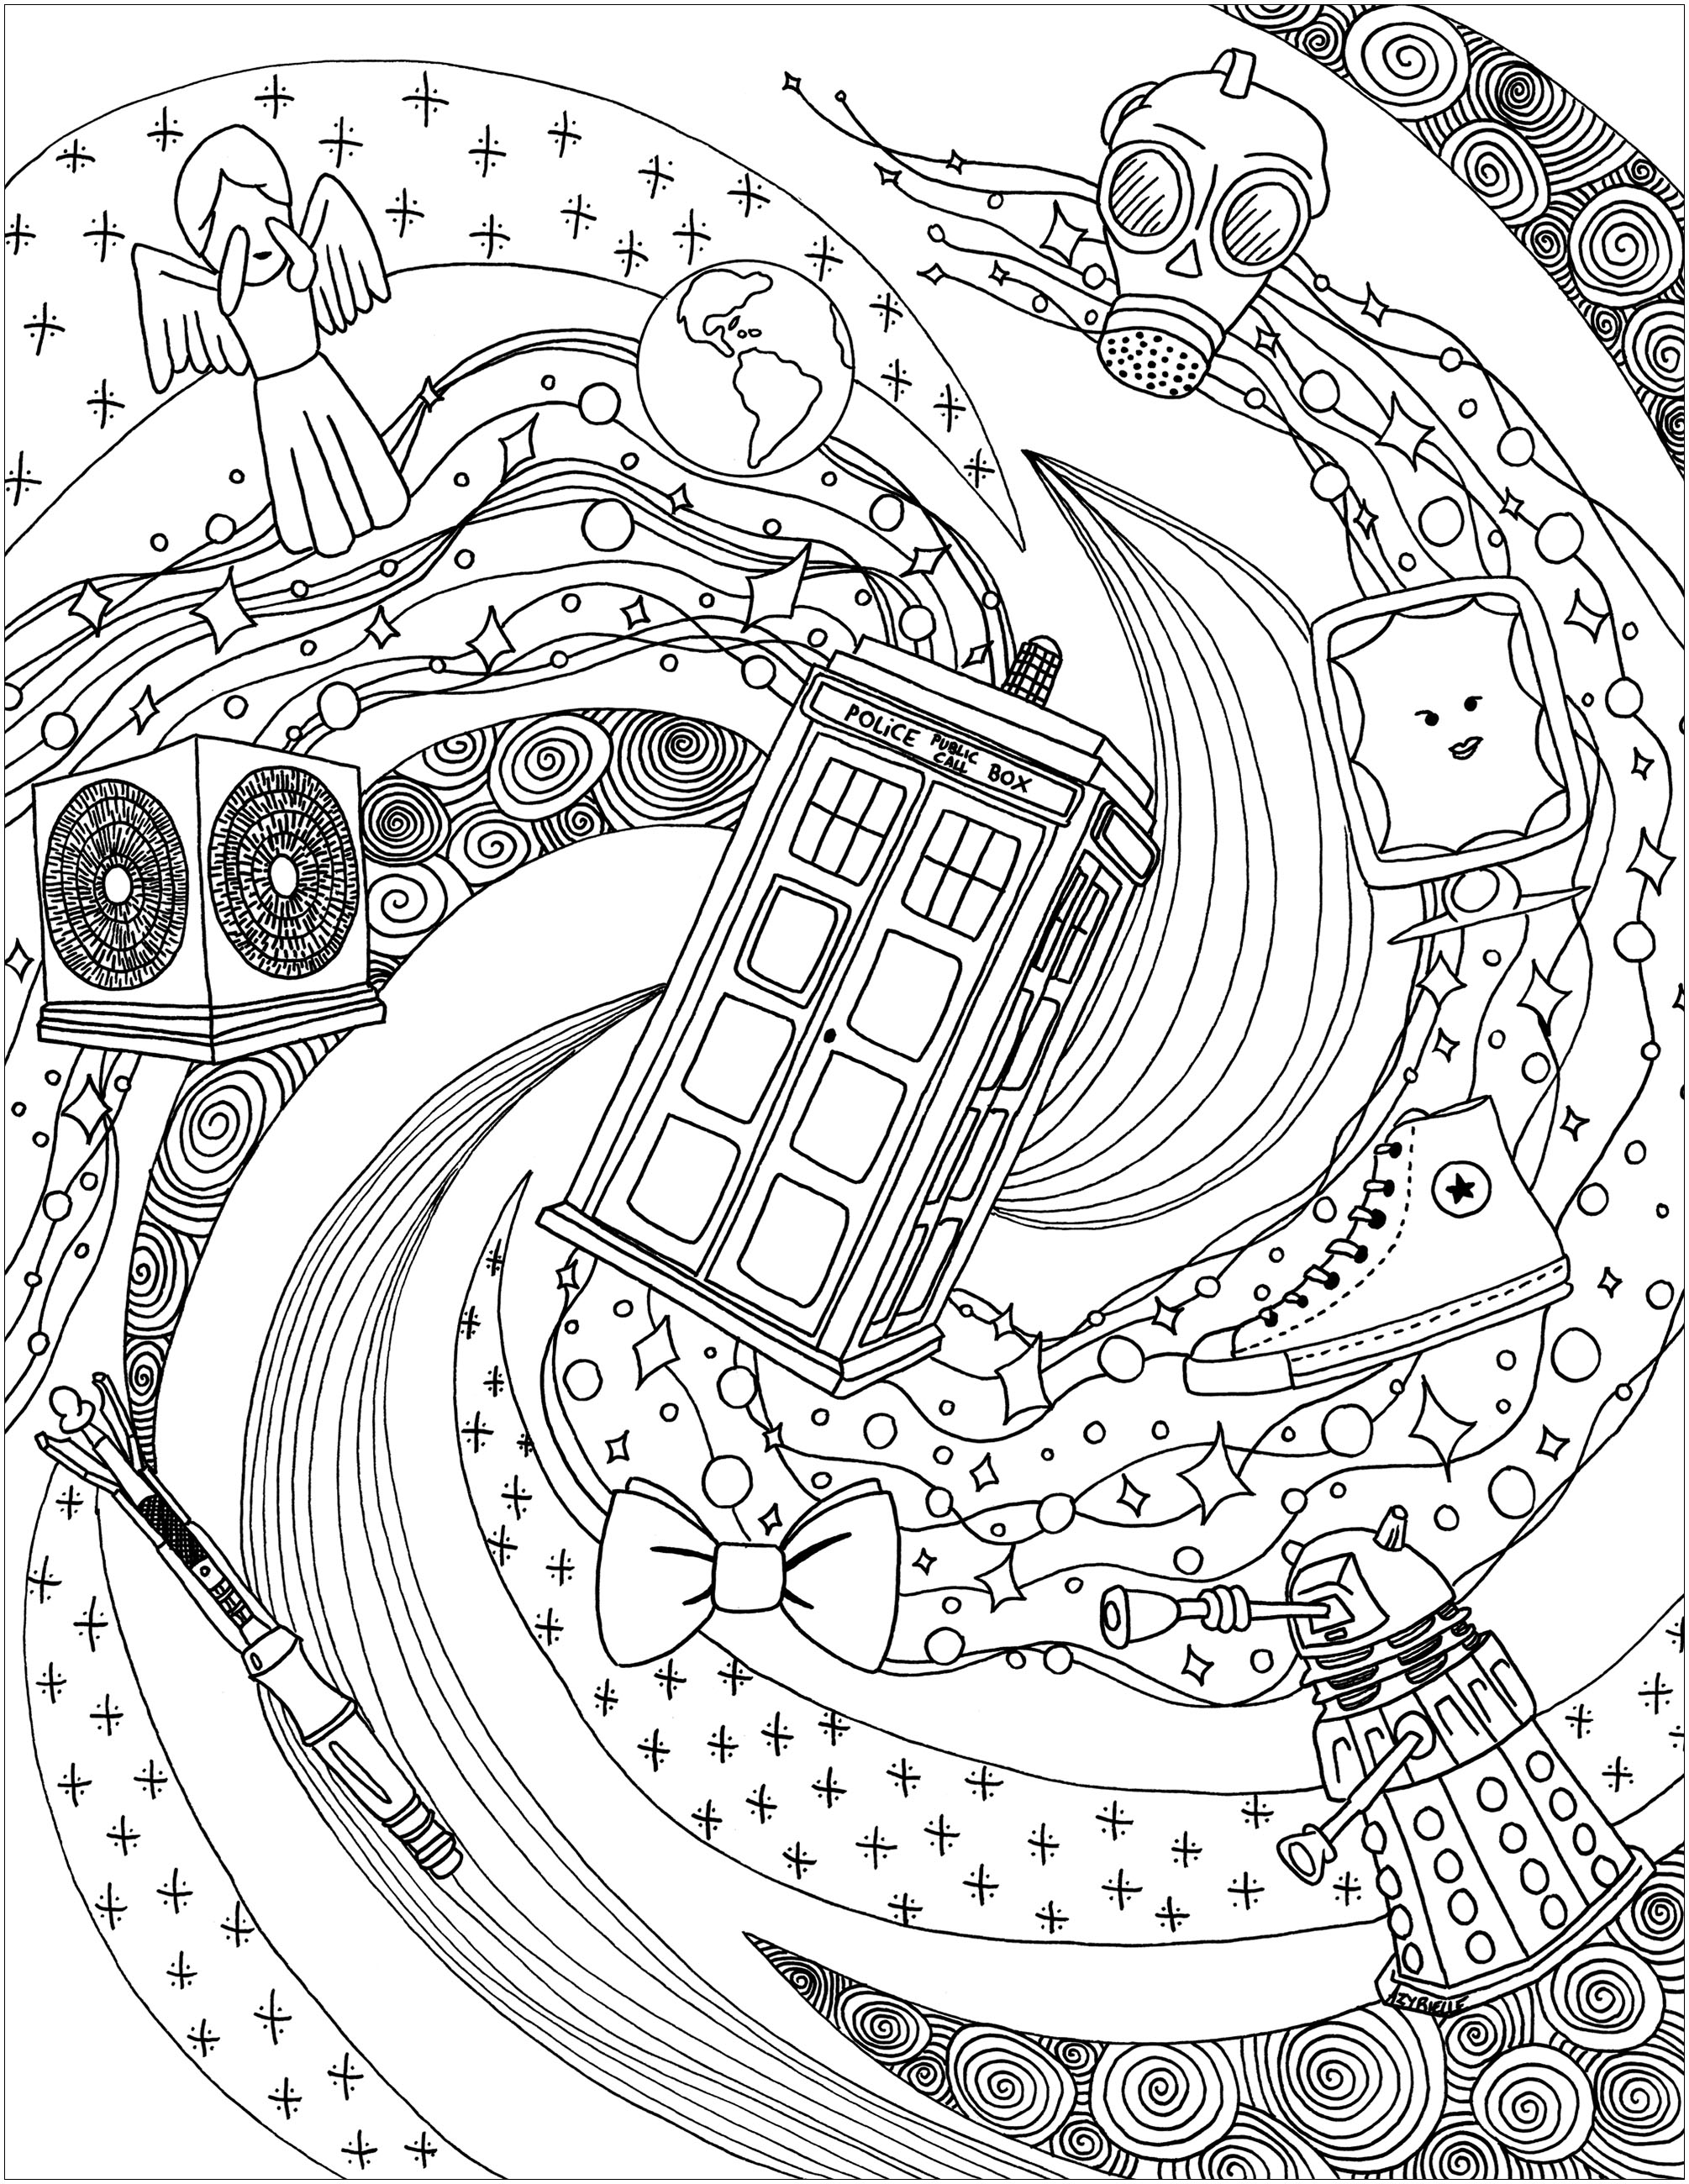 doctor who pictures to colour get this doctor who coloring pages online printable b6qsa colour who to pictures doctor